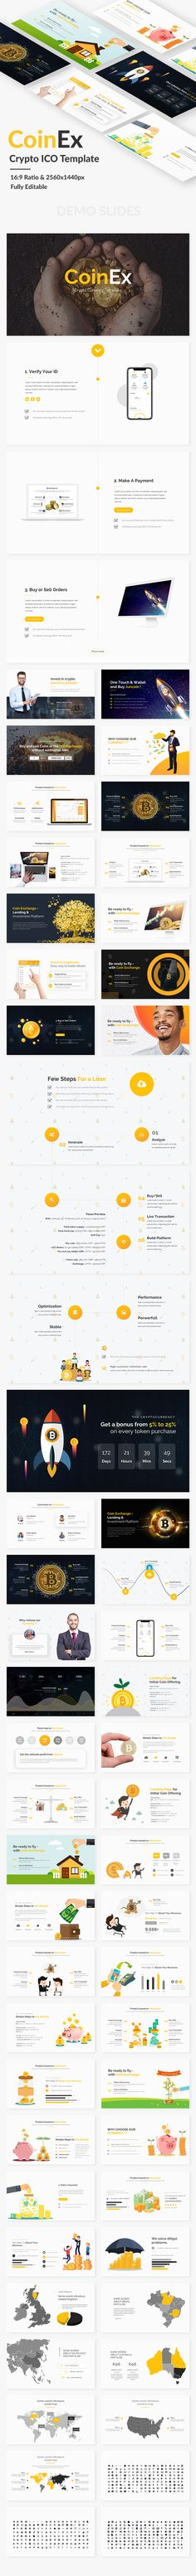 Coin Exchange and Crypto Currency Powerpoint Template - Creative PowerPoint Templates Download here : https://graphicriver.net/item/coin-exchange-and-crypto-currency-powerpoint-template/21611111?s_rank=4&ref=wildhan532